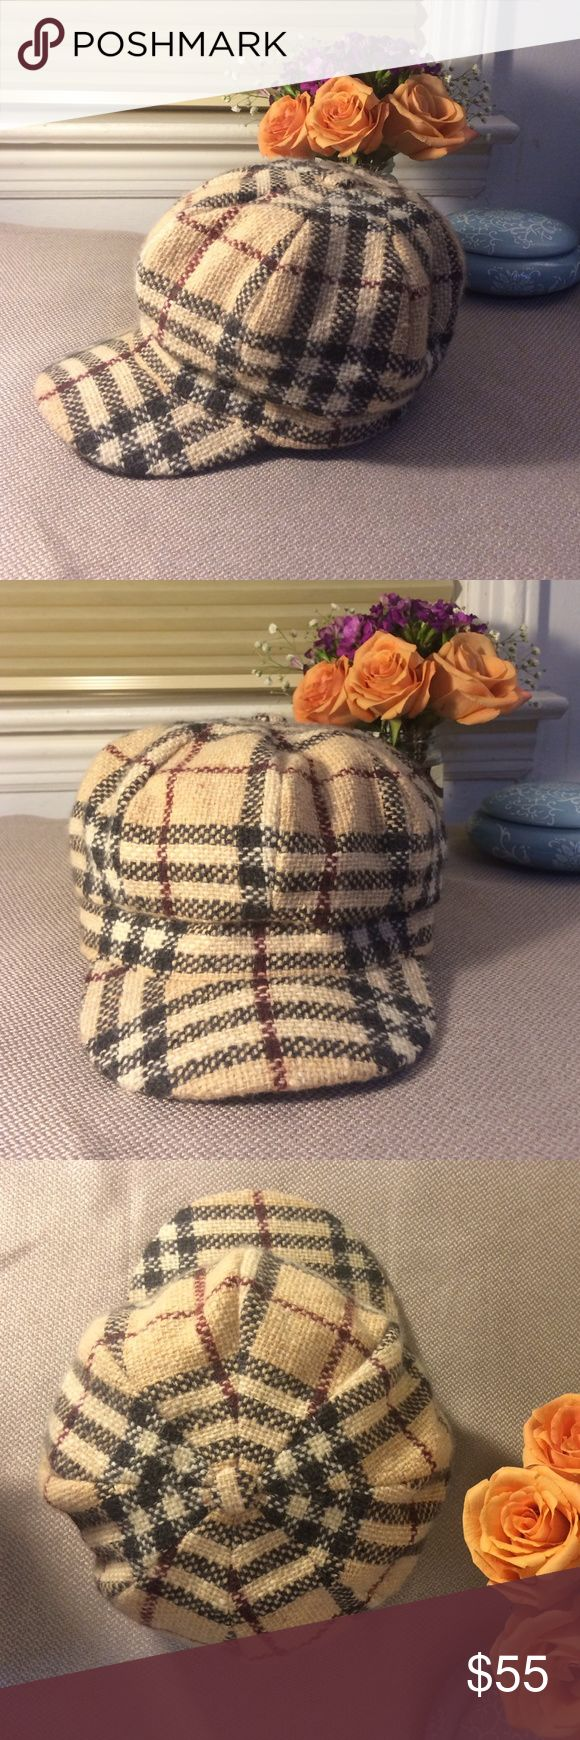 Burberry cap for women. Never worn and in excellent condition. Burberry Accessories Hats